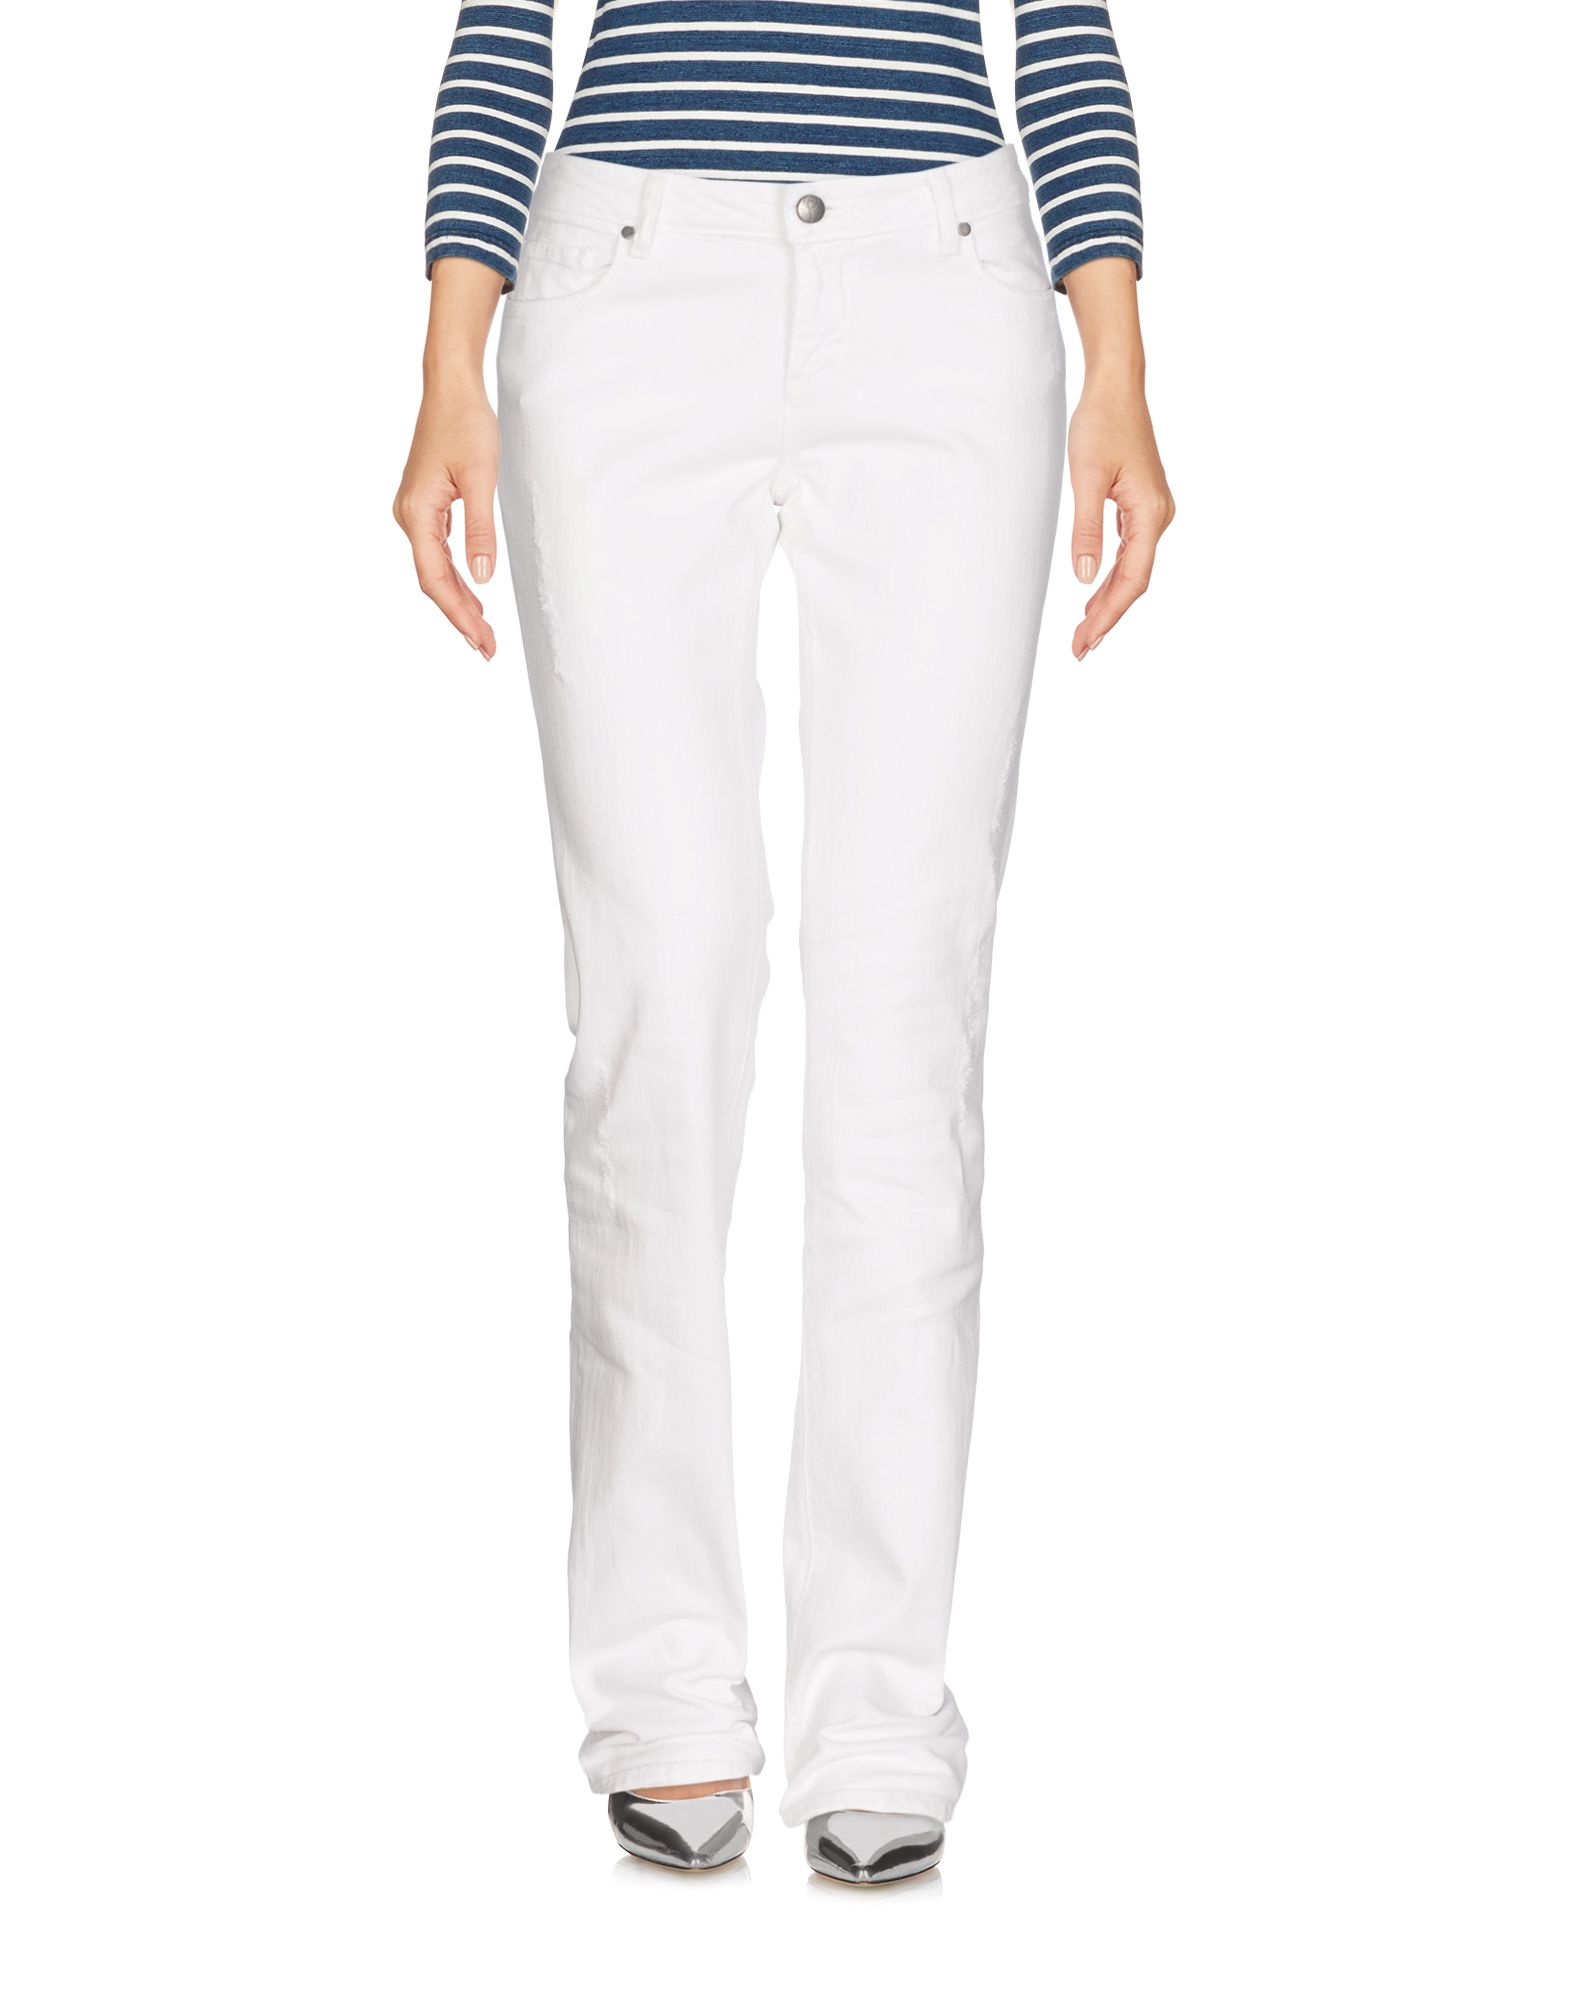 PAIGE PREMIUM DENIM Denim Pants in White